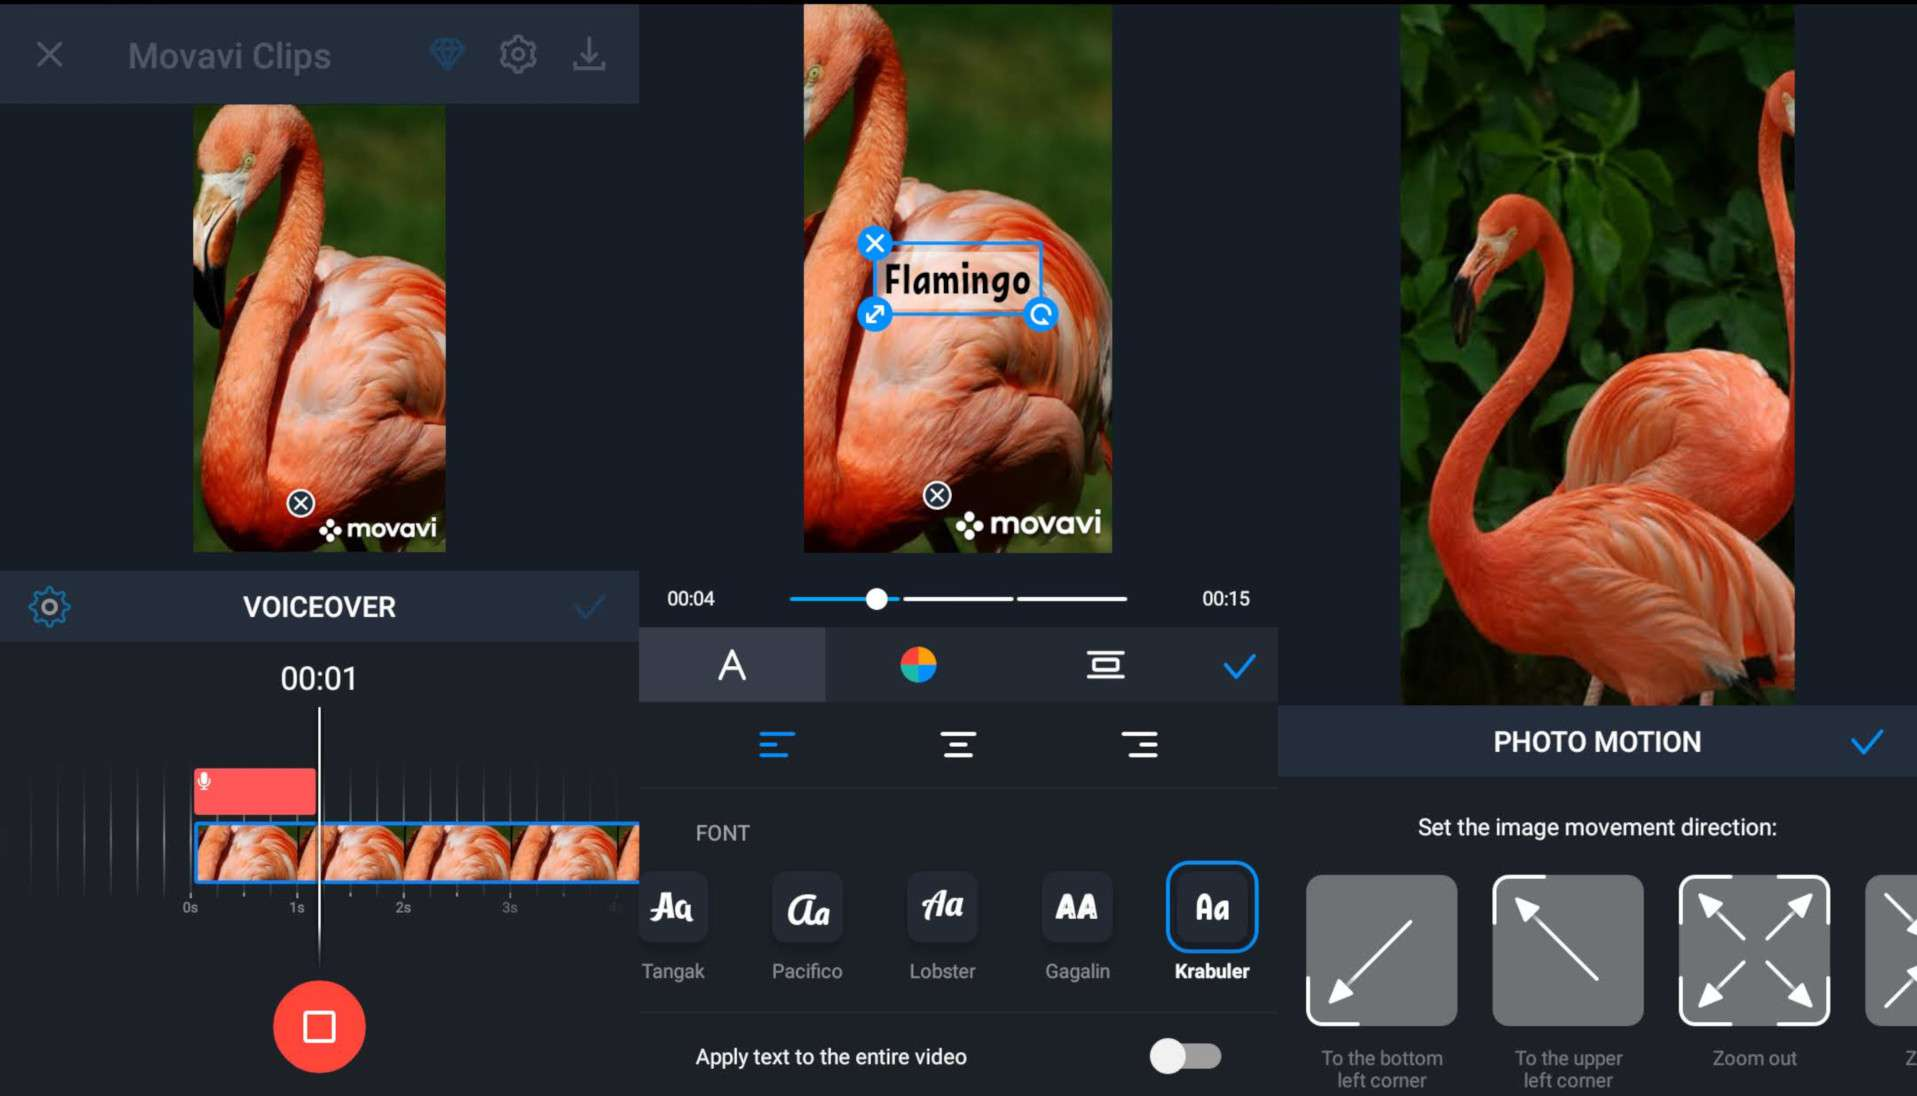 Record a voiceover, add text, and apply motion to Movavi Clips slideshows